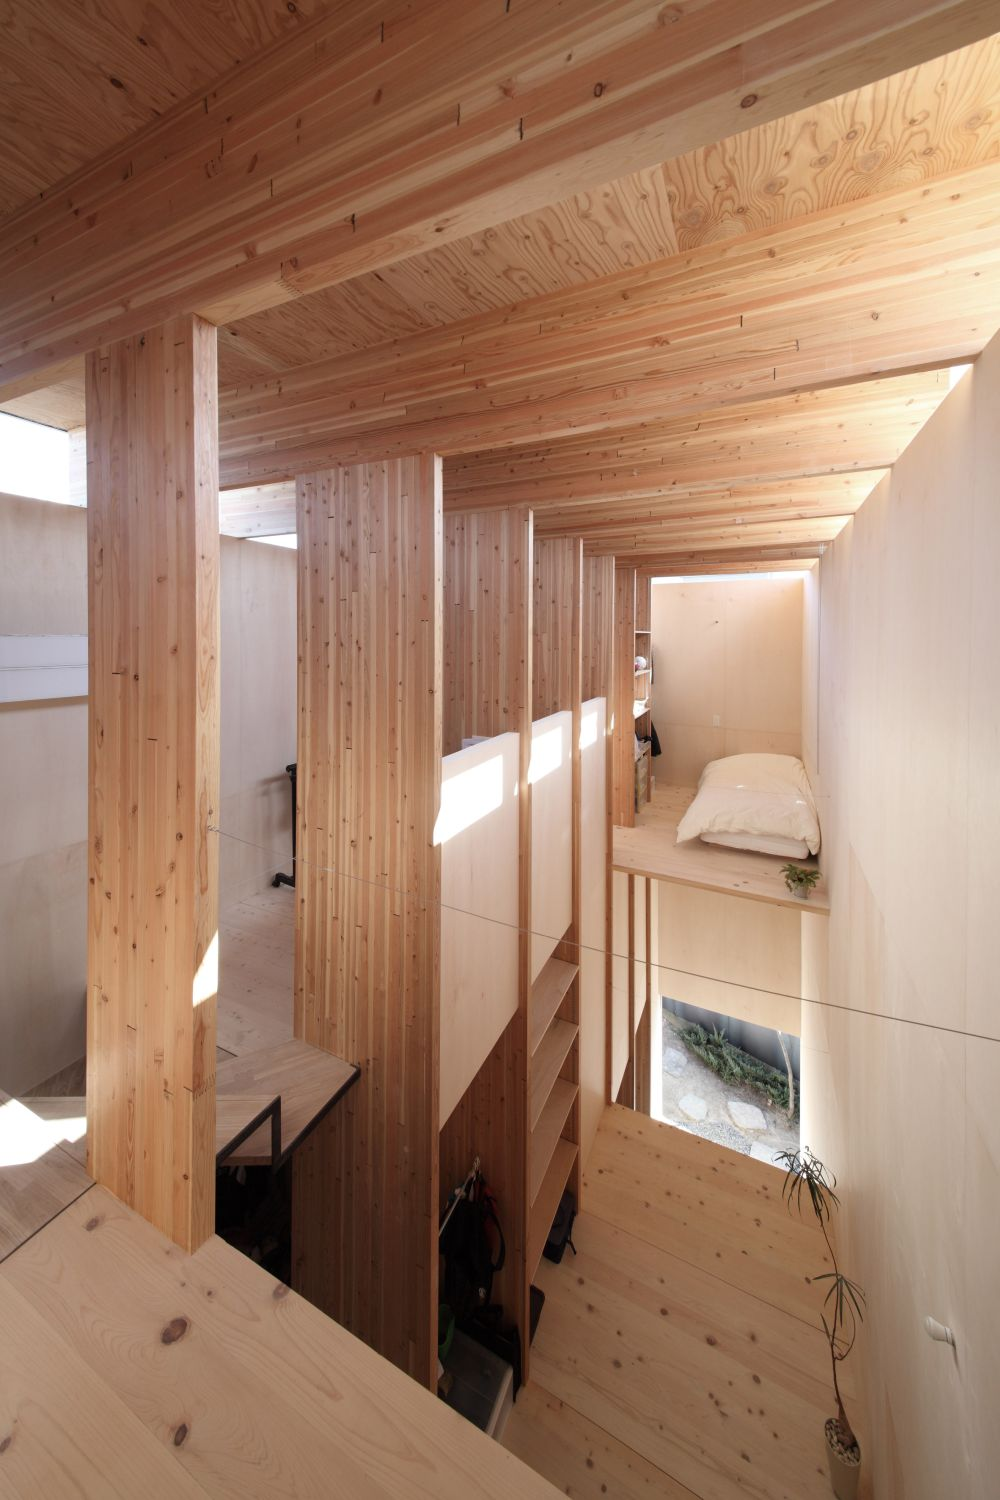 1560511772 135 cool minimalist homes made from wood that sync with nature - Cool Minimalist Homes Made From Wood That Sync With Nature